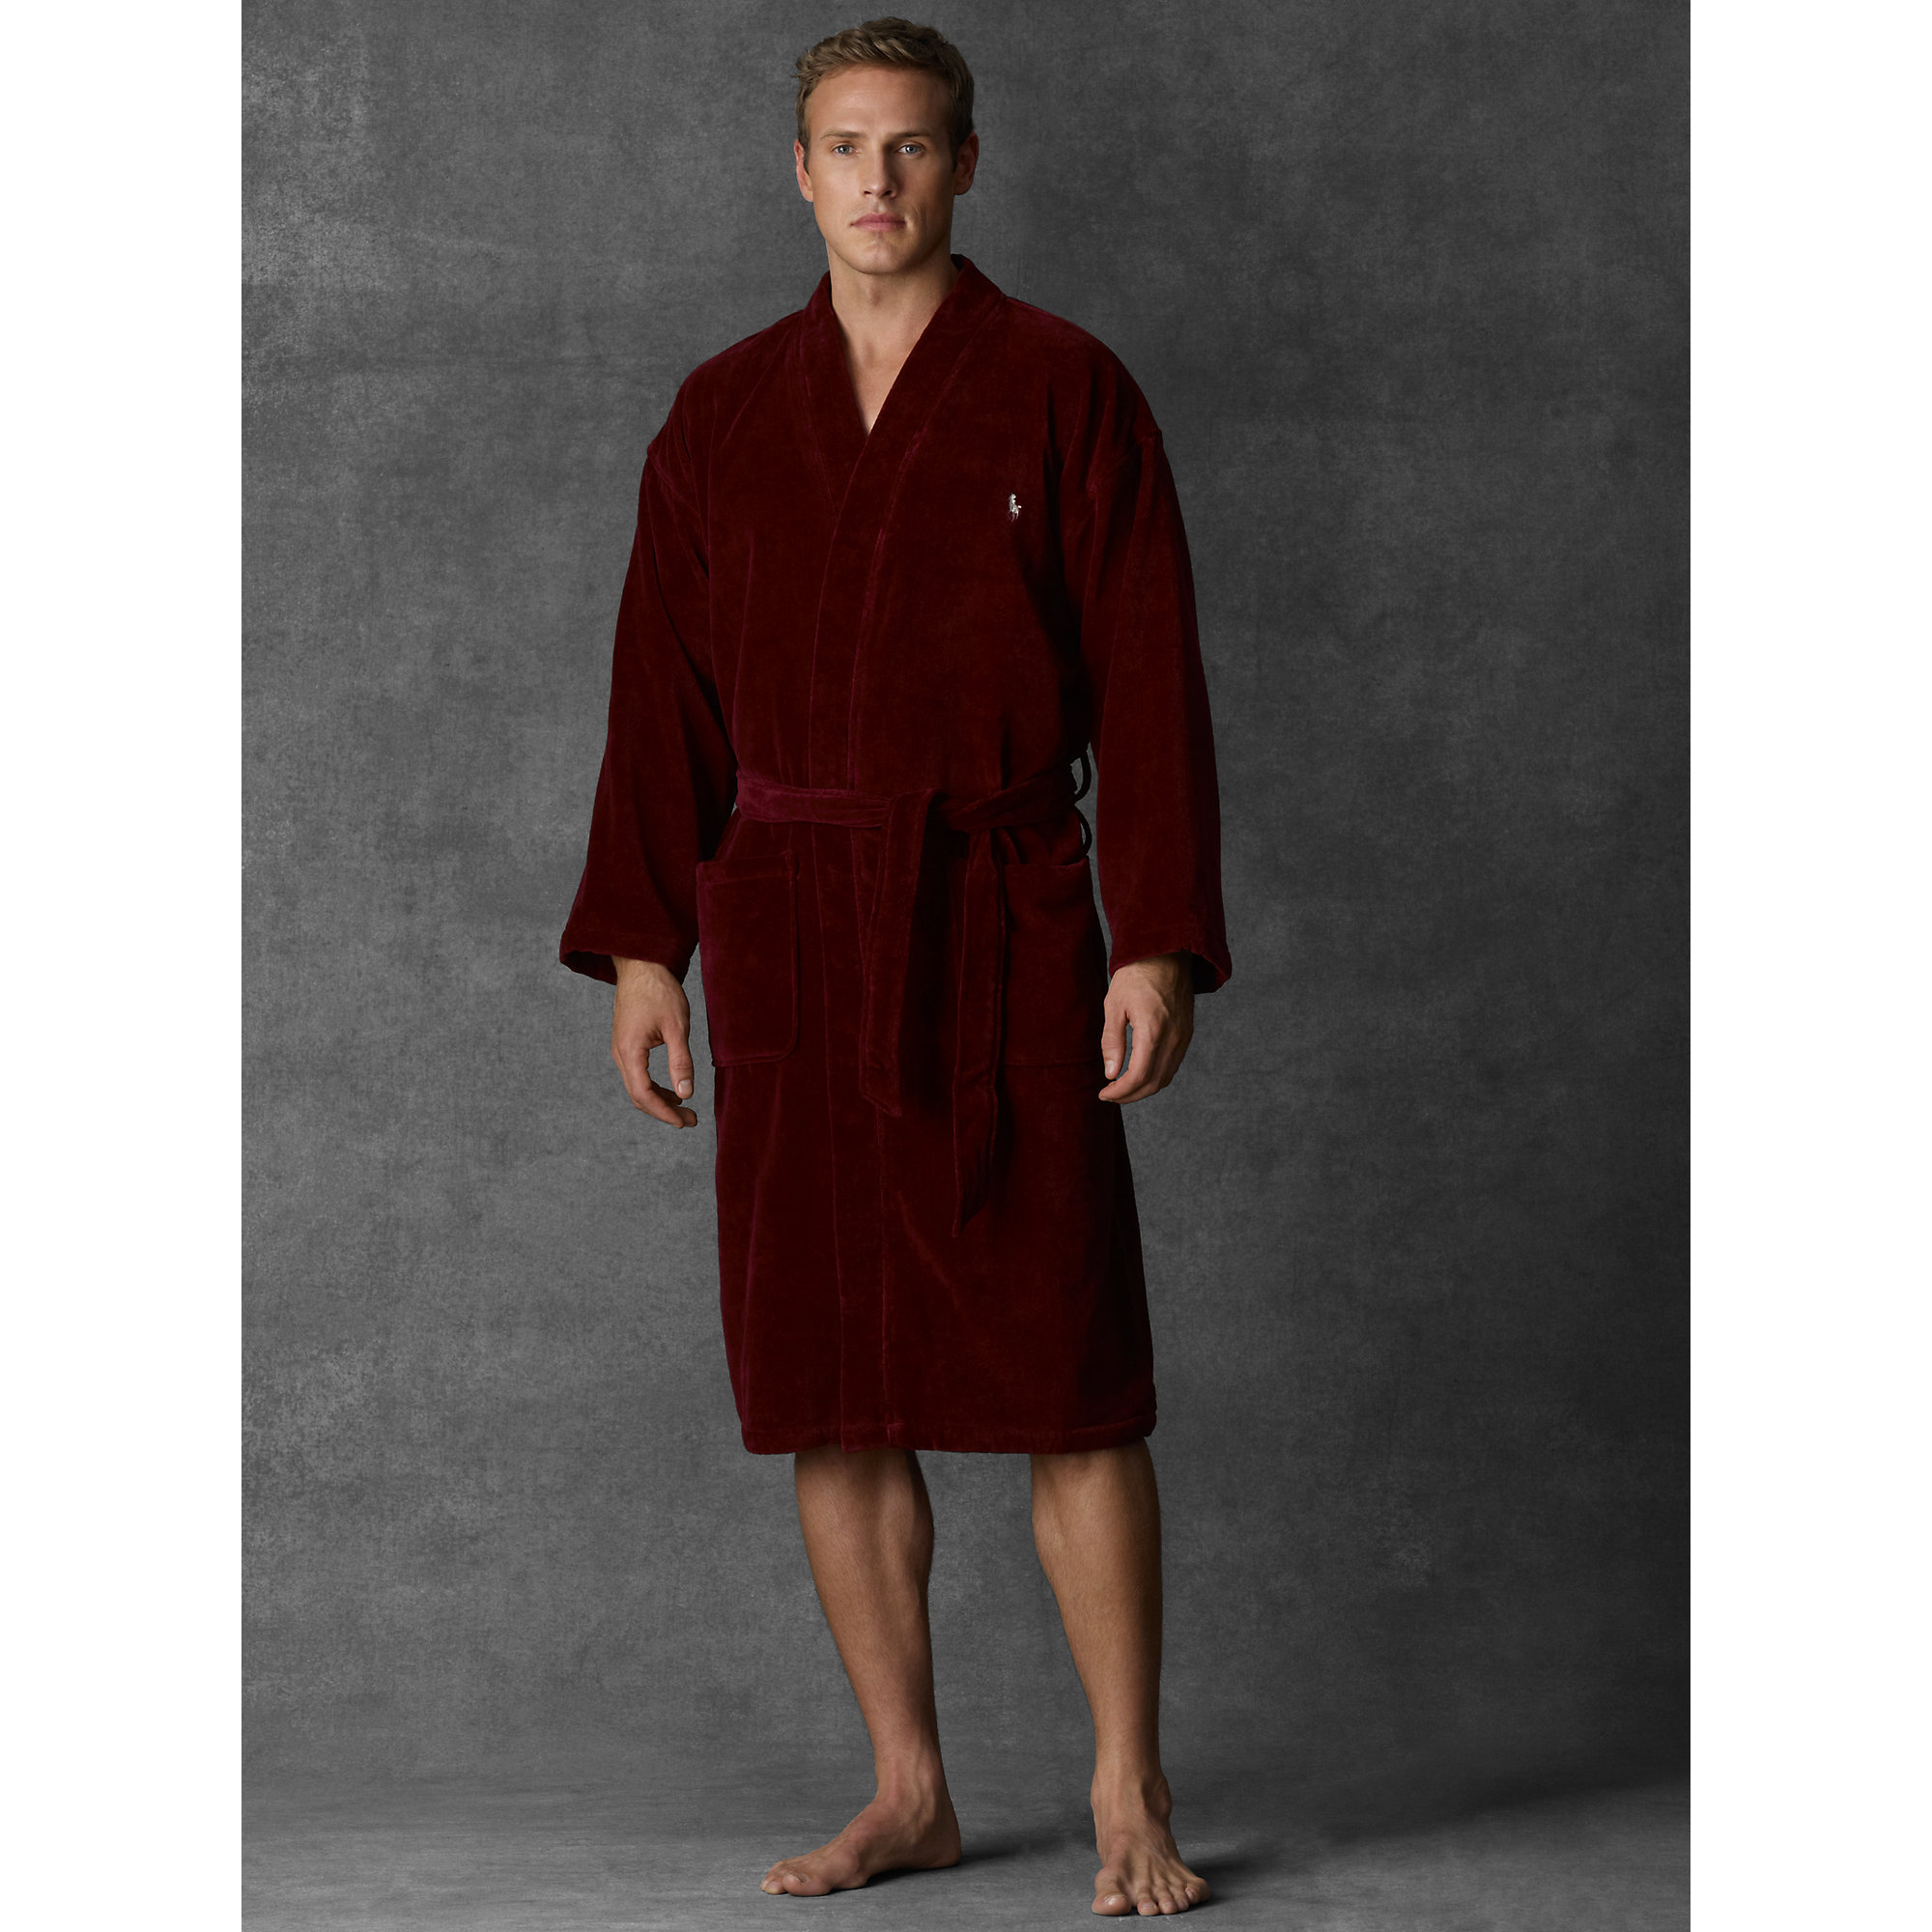 polo ralph lauren terry kimono robe in purple for men lyst. Black Bedroom Furniture Sets. Home Design Ideas